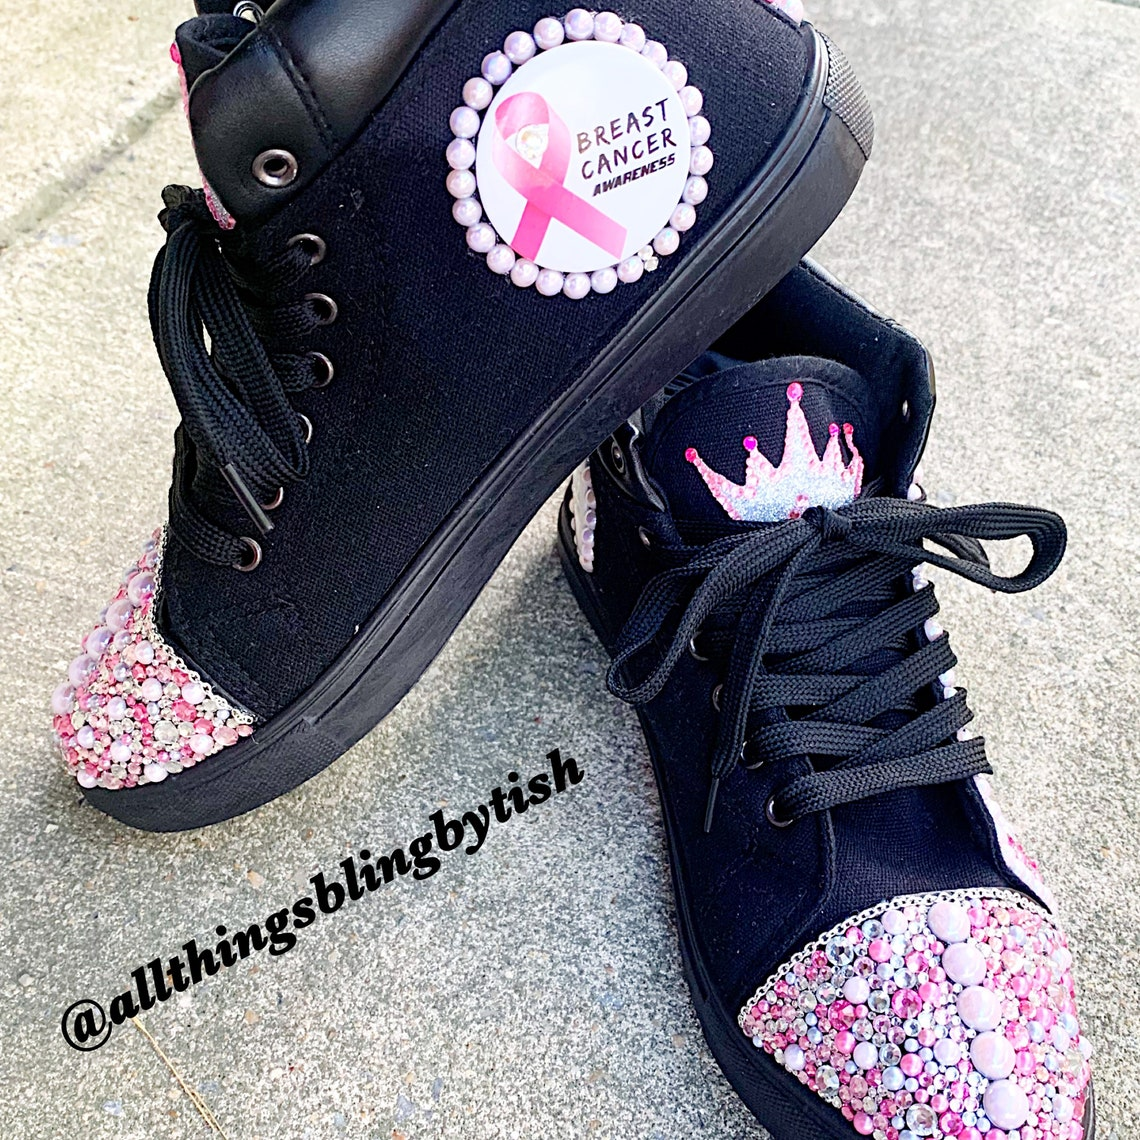 Breast Cancer Bling Sneakers - Big Sale Dan63